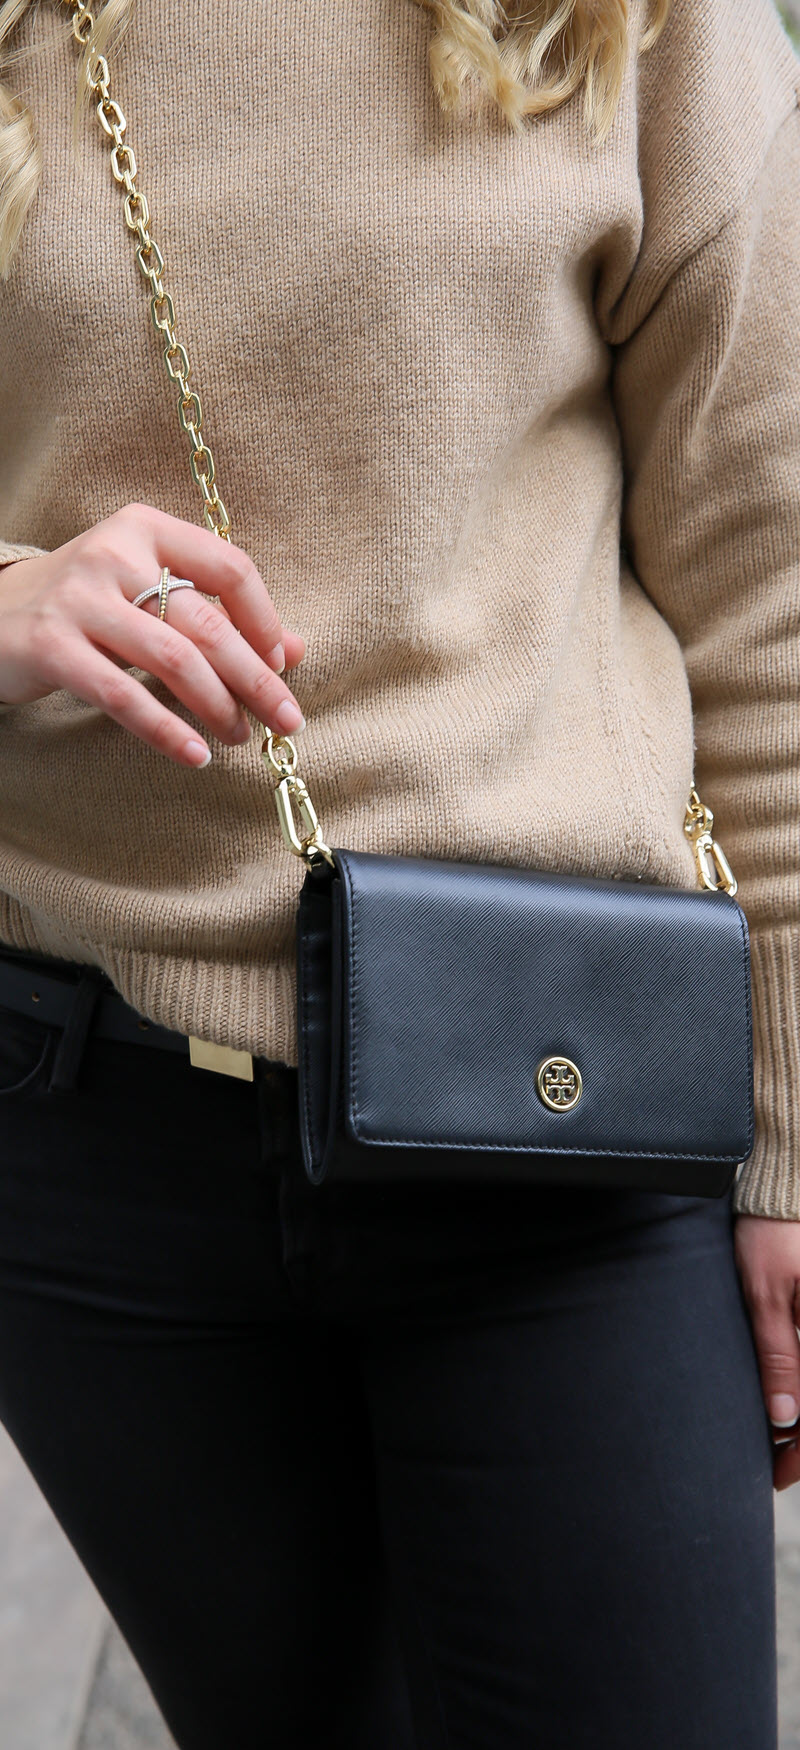 Tan Turtleneck Outfit - Aritzia Babaton Review #ootd #outfitideas #winterfashion #outfitinspiration #fashionblog #fashionbloggers #womensstyle #womenover30 #classicstyle #toryburch #aritizia #outfit